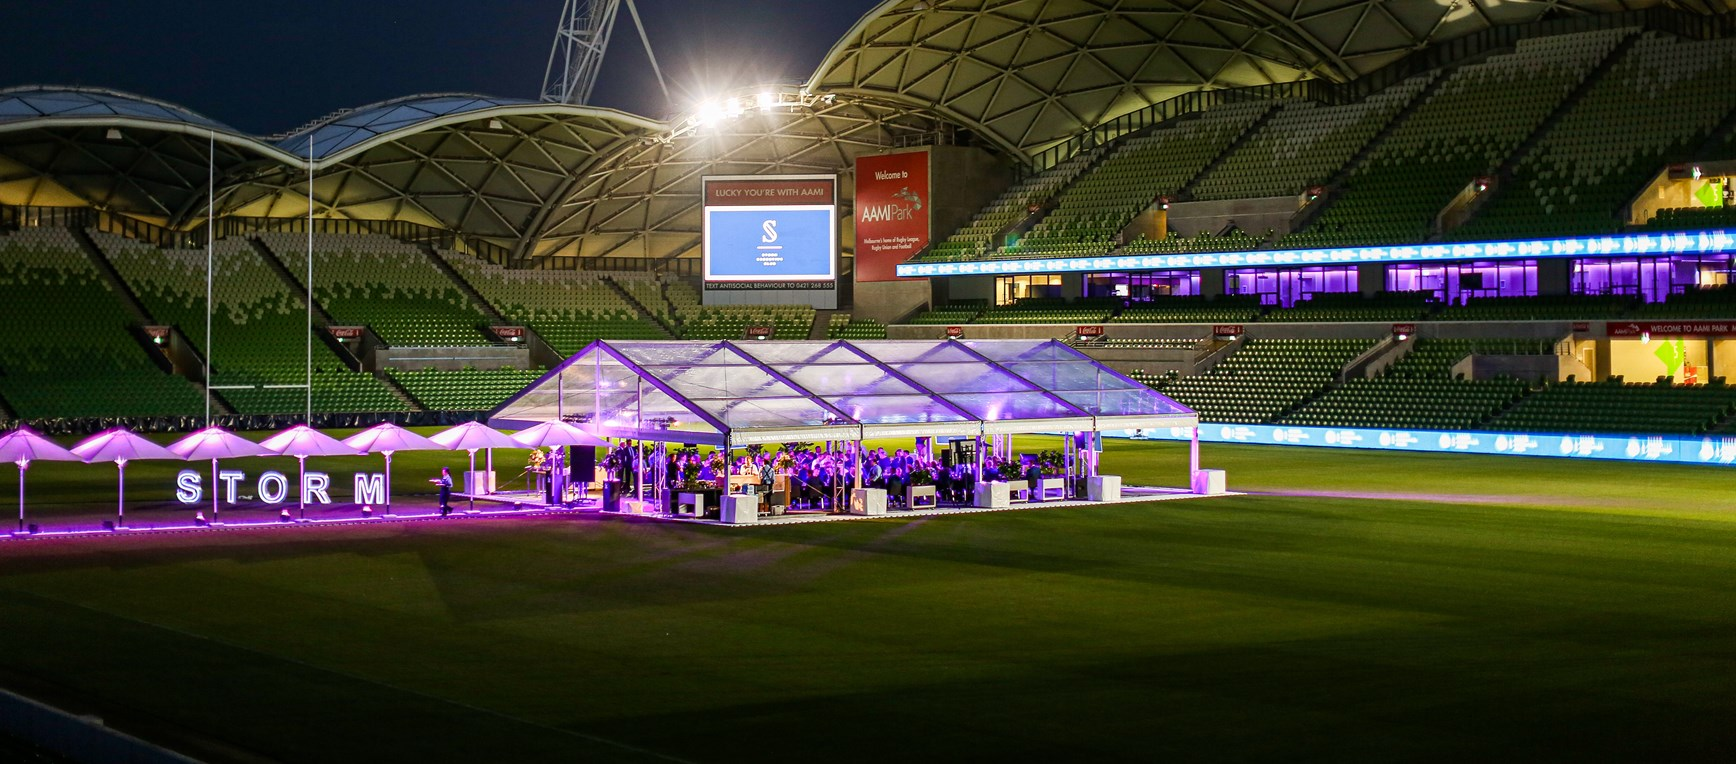 Storm Executive Club launched on AAMI Park turf